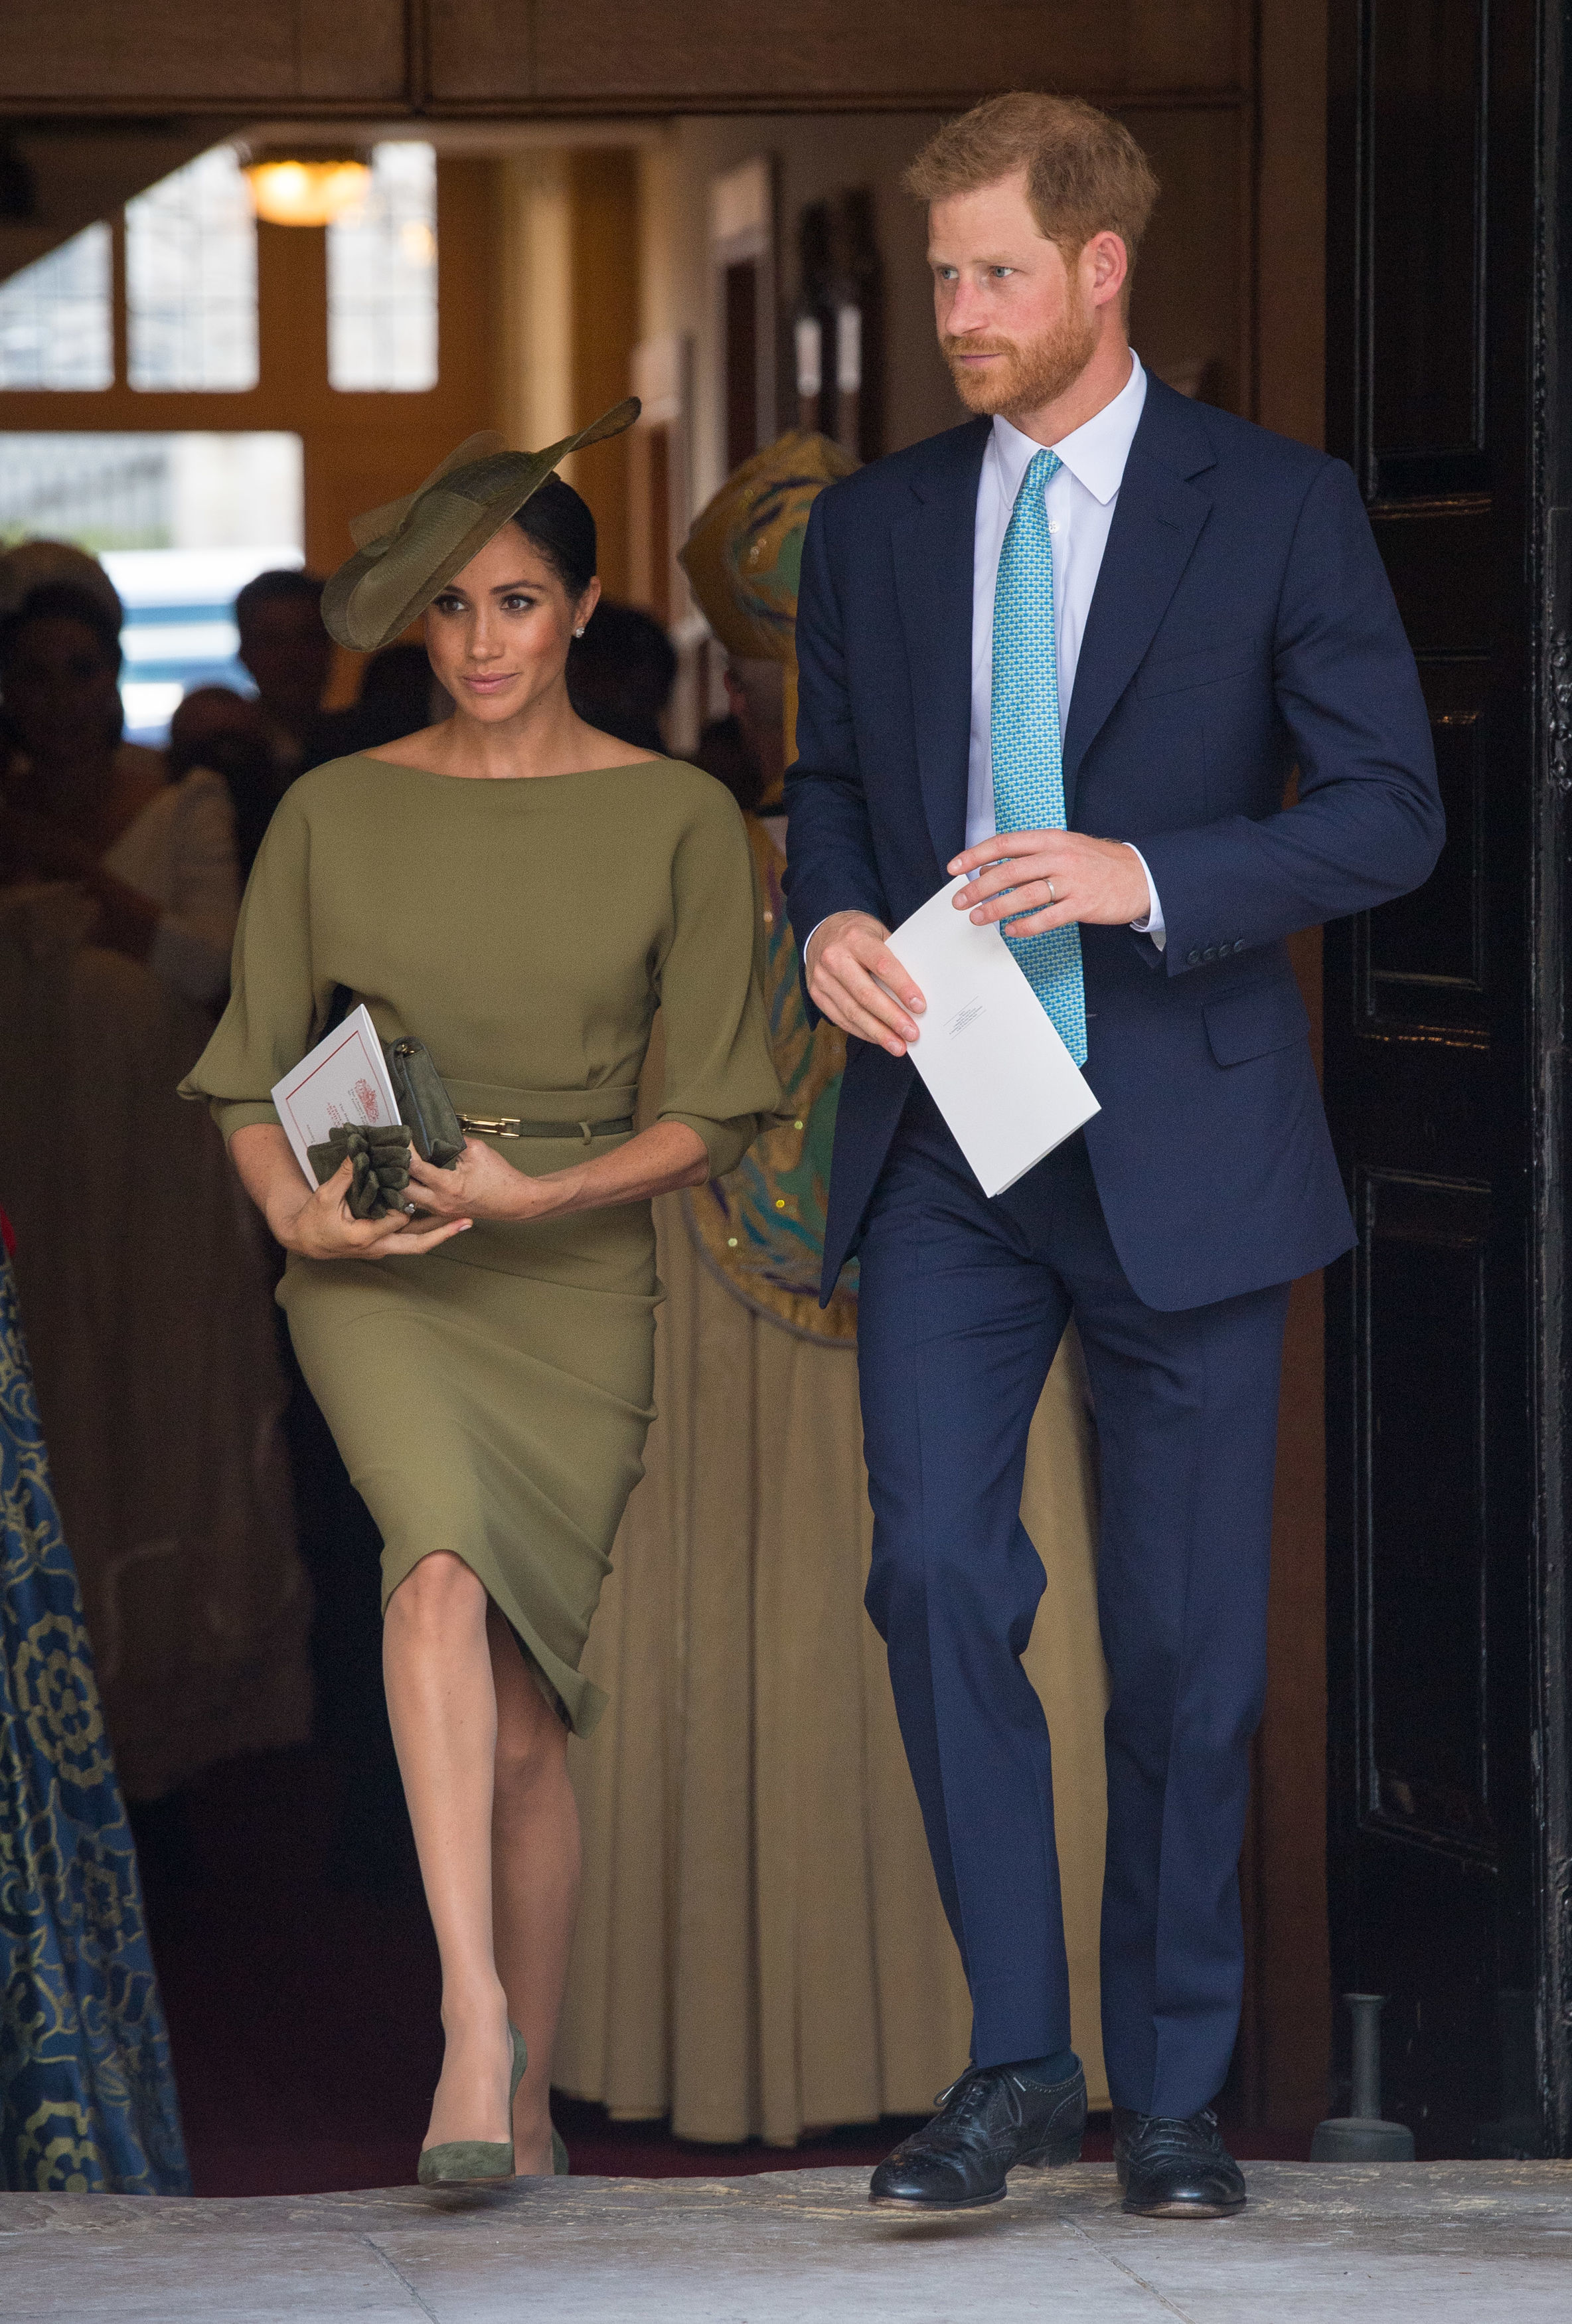 LONDON, ENGLAND - JULY 09: The Duke and Duchess of Sussex depart after attending the christening of Prince Louis at the Chapel Royal, St James's Palace on July 09, 2018 in London, England. (Photo by Dominic Lipinski - WPA Pool/Getty Images)